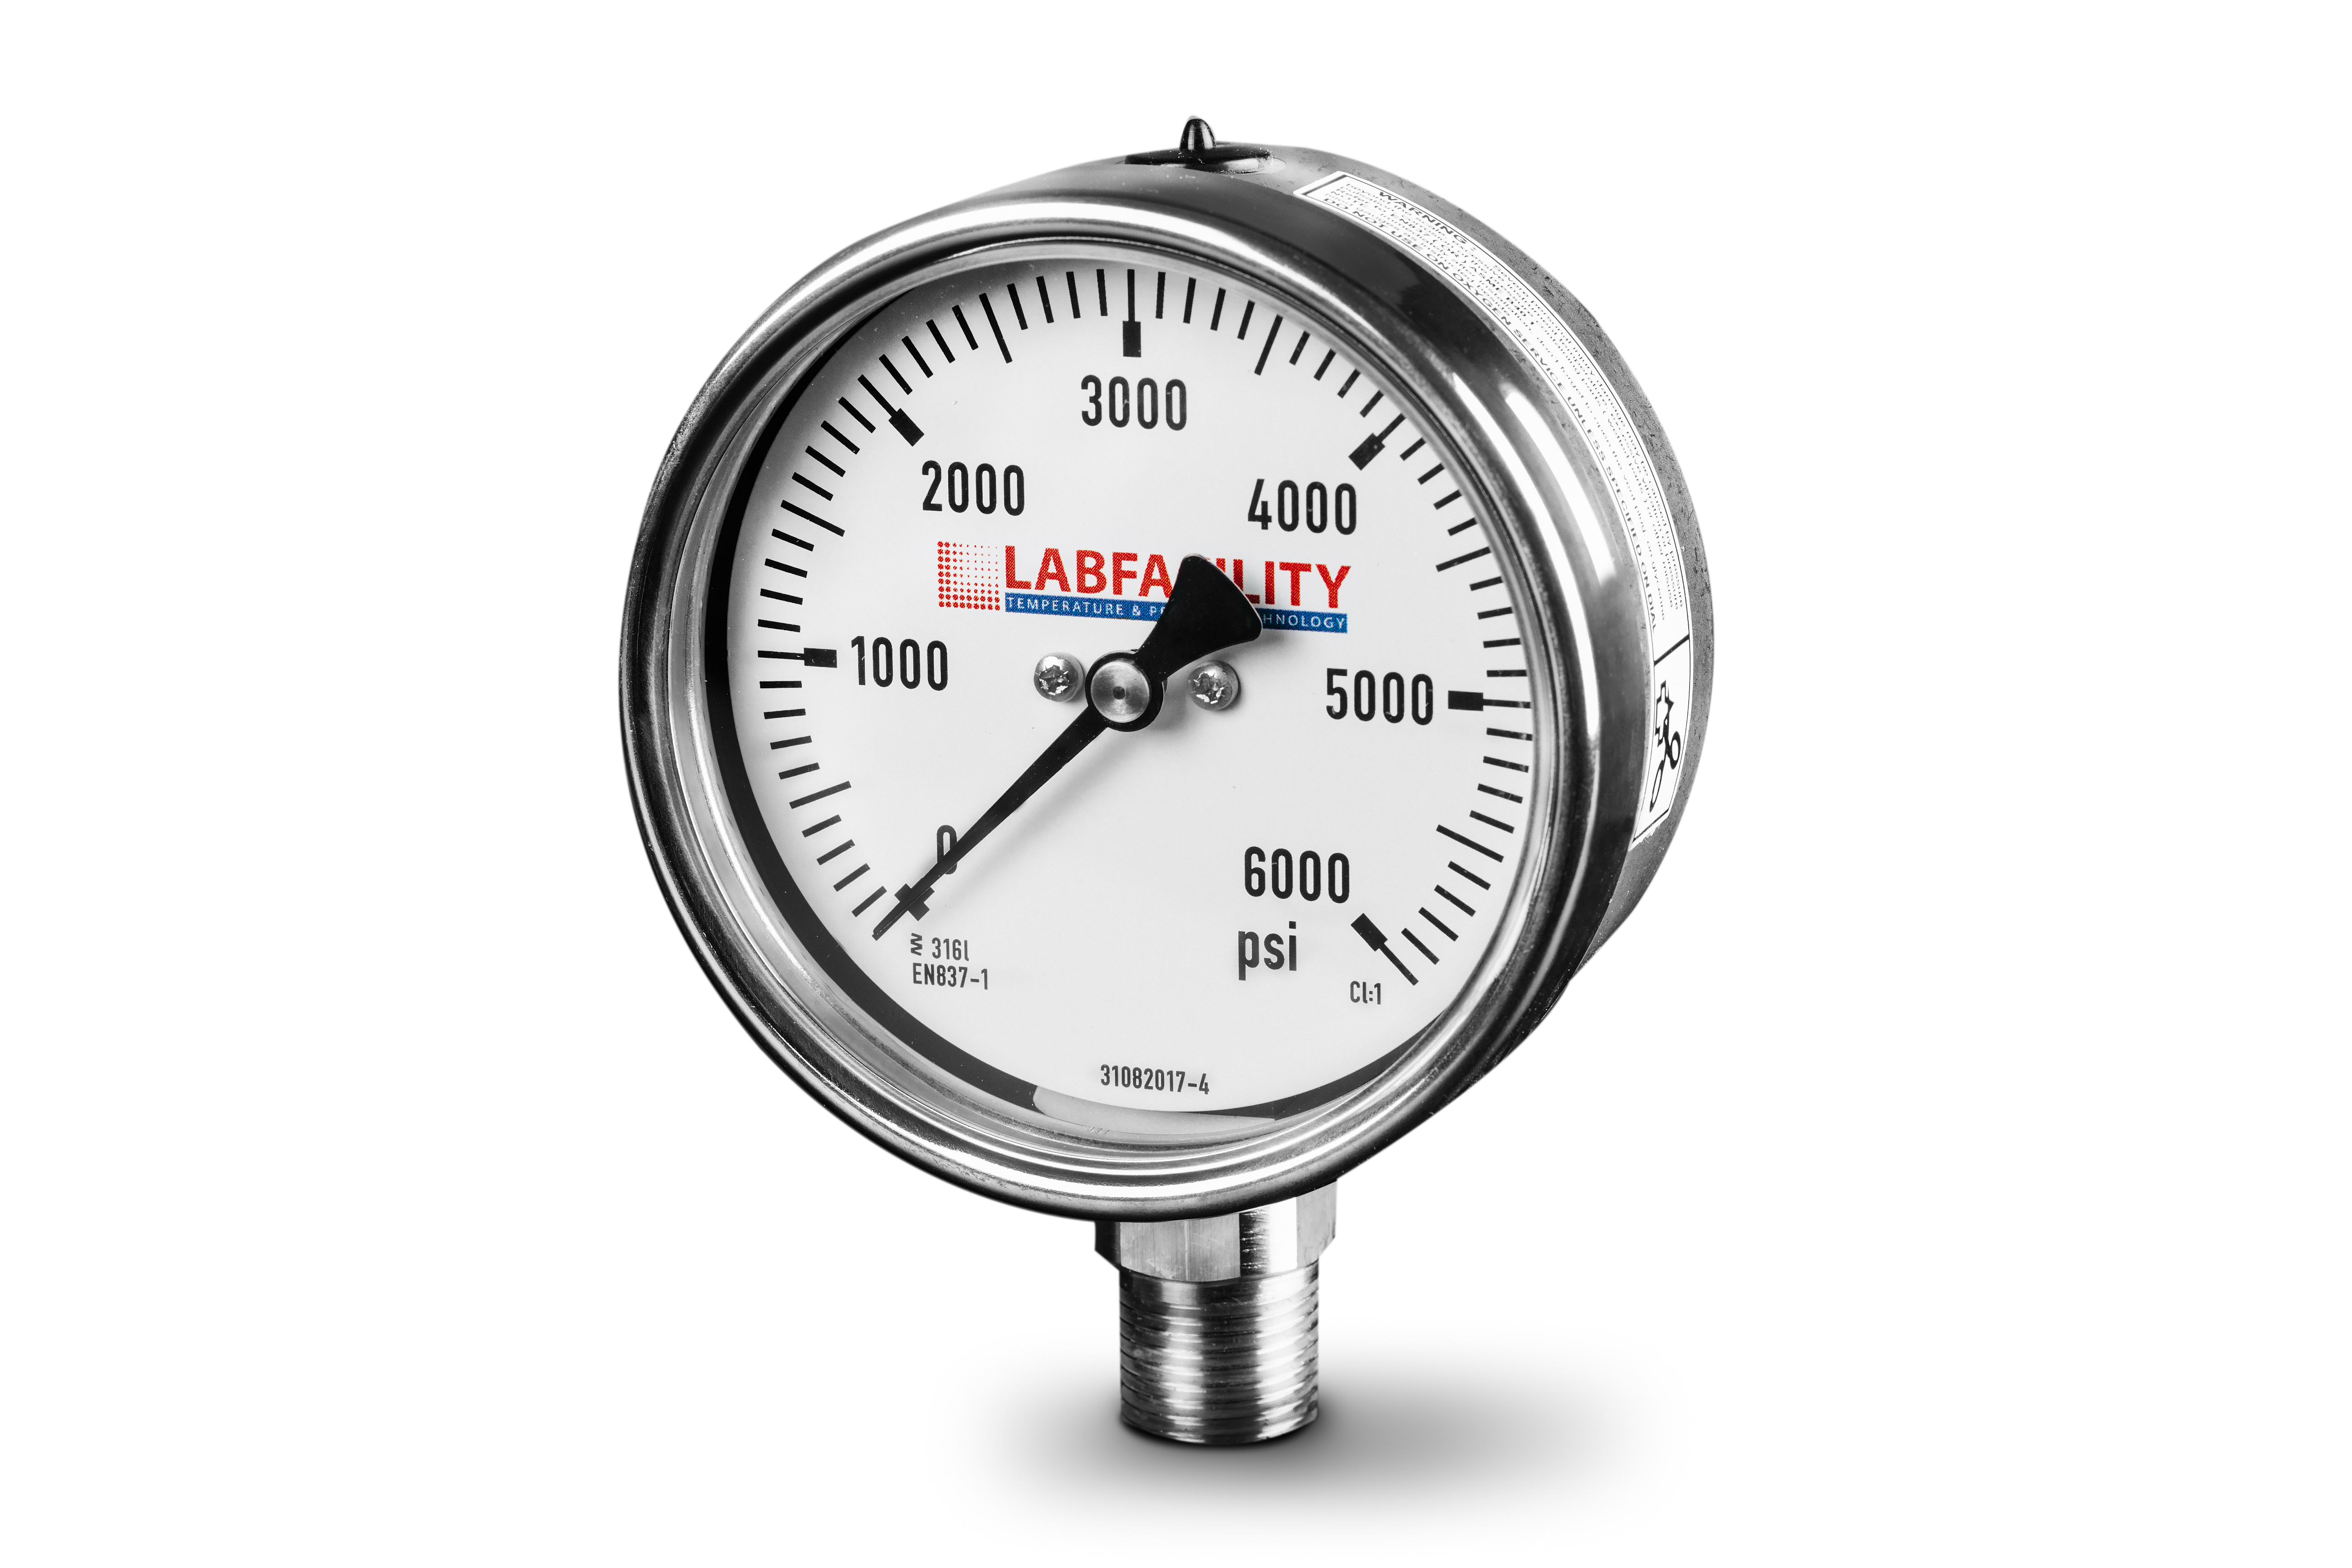 Stainless Steel Pressure Gauges - Bottom Entry Style